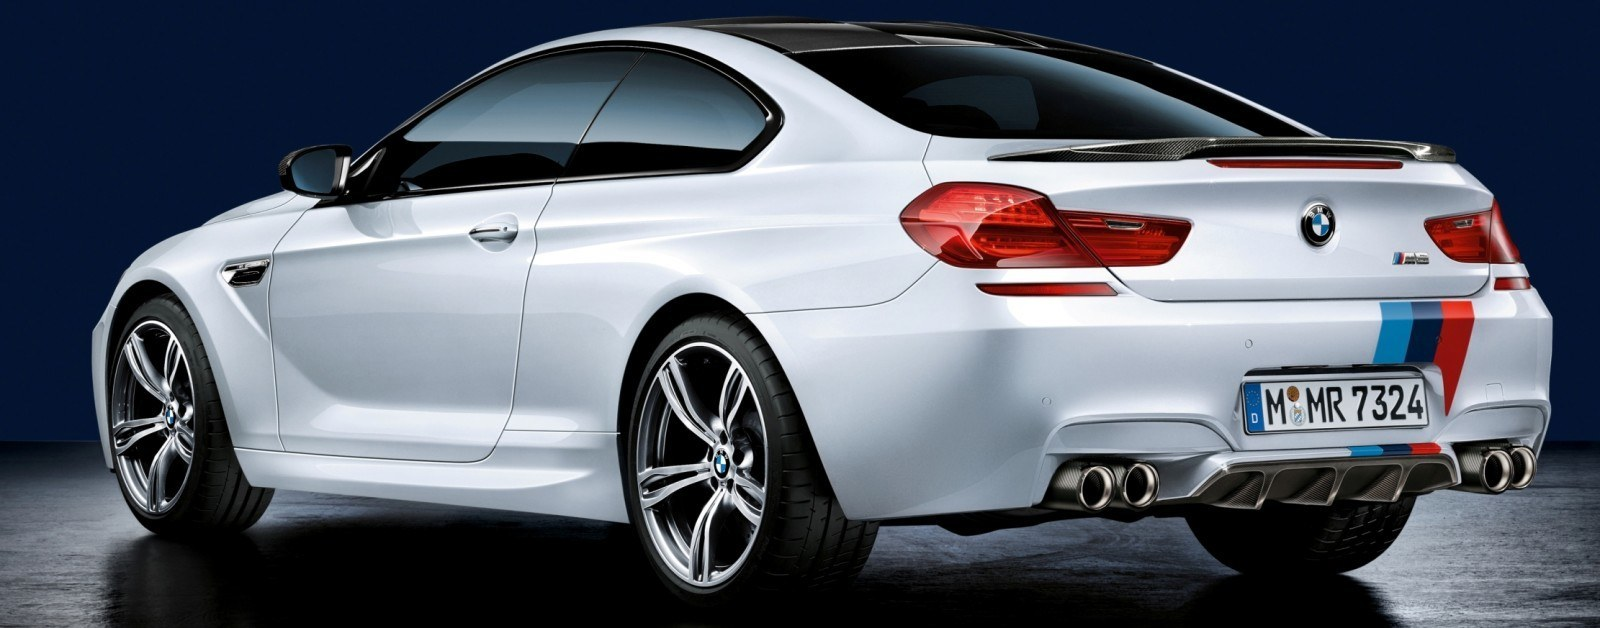 M Performance Catalog Offers Hundreds of Ways to Up the Drama and Road Presence of 335i, 535i, M3 and even the X5 and X6 87